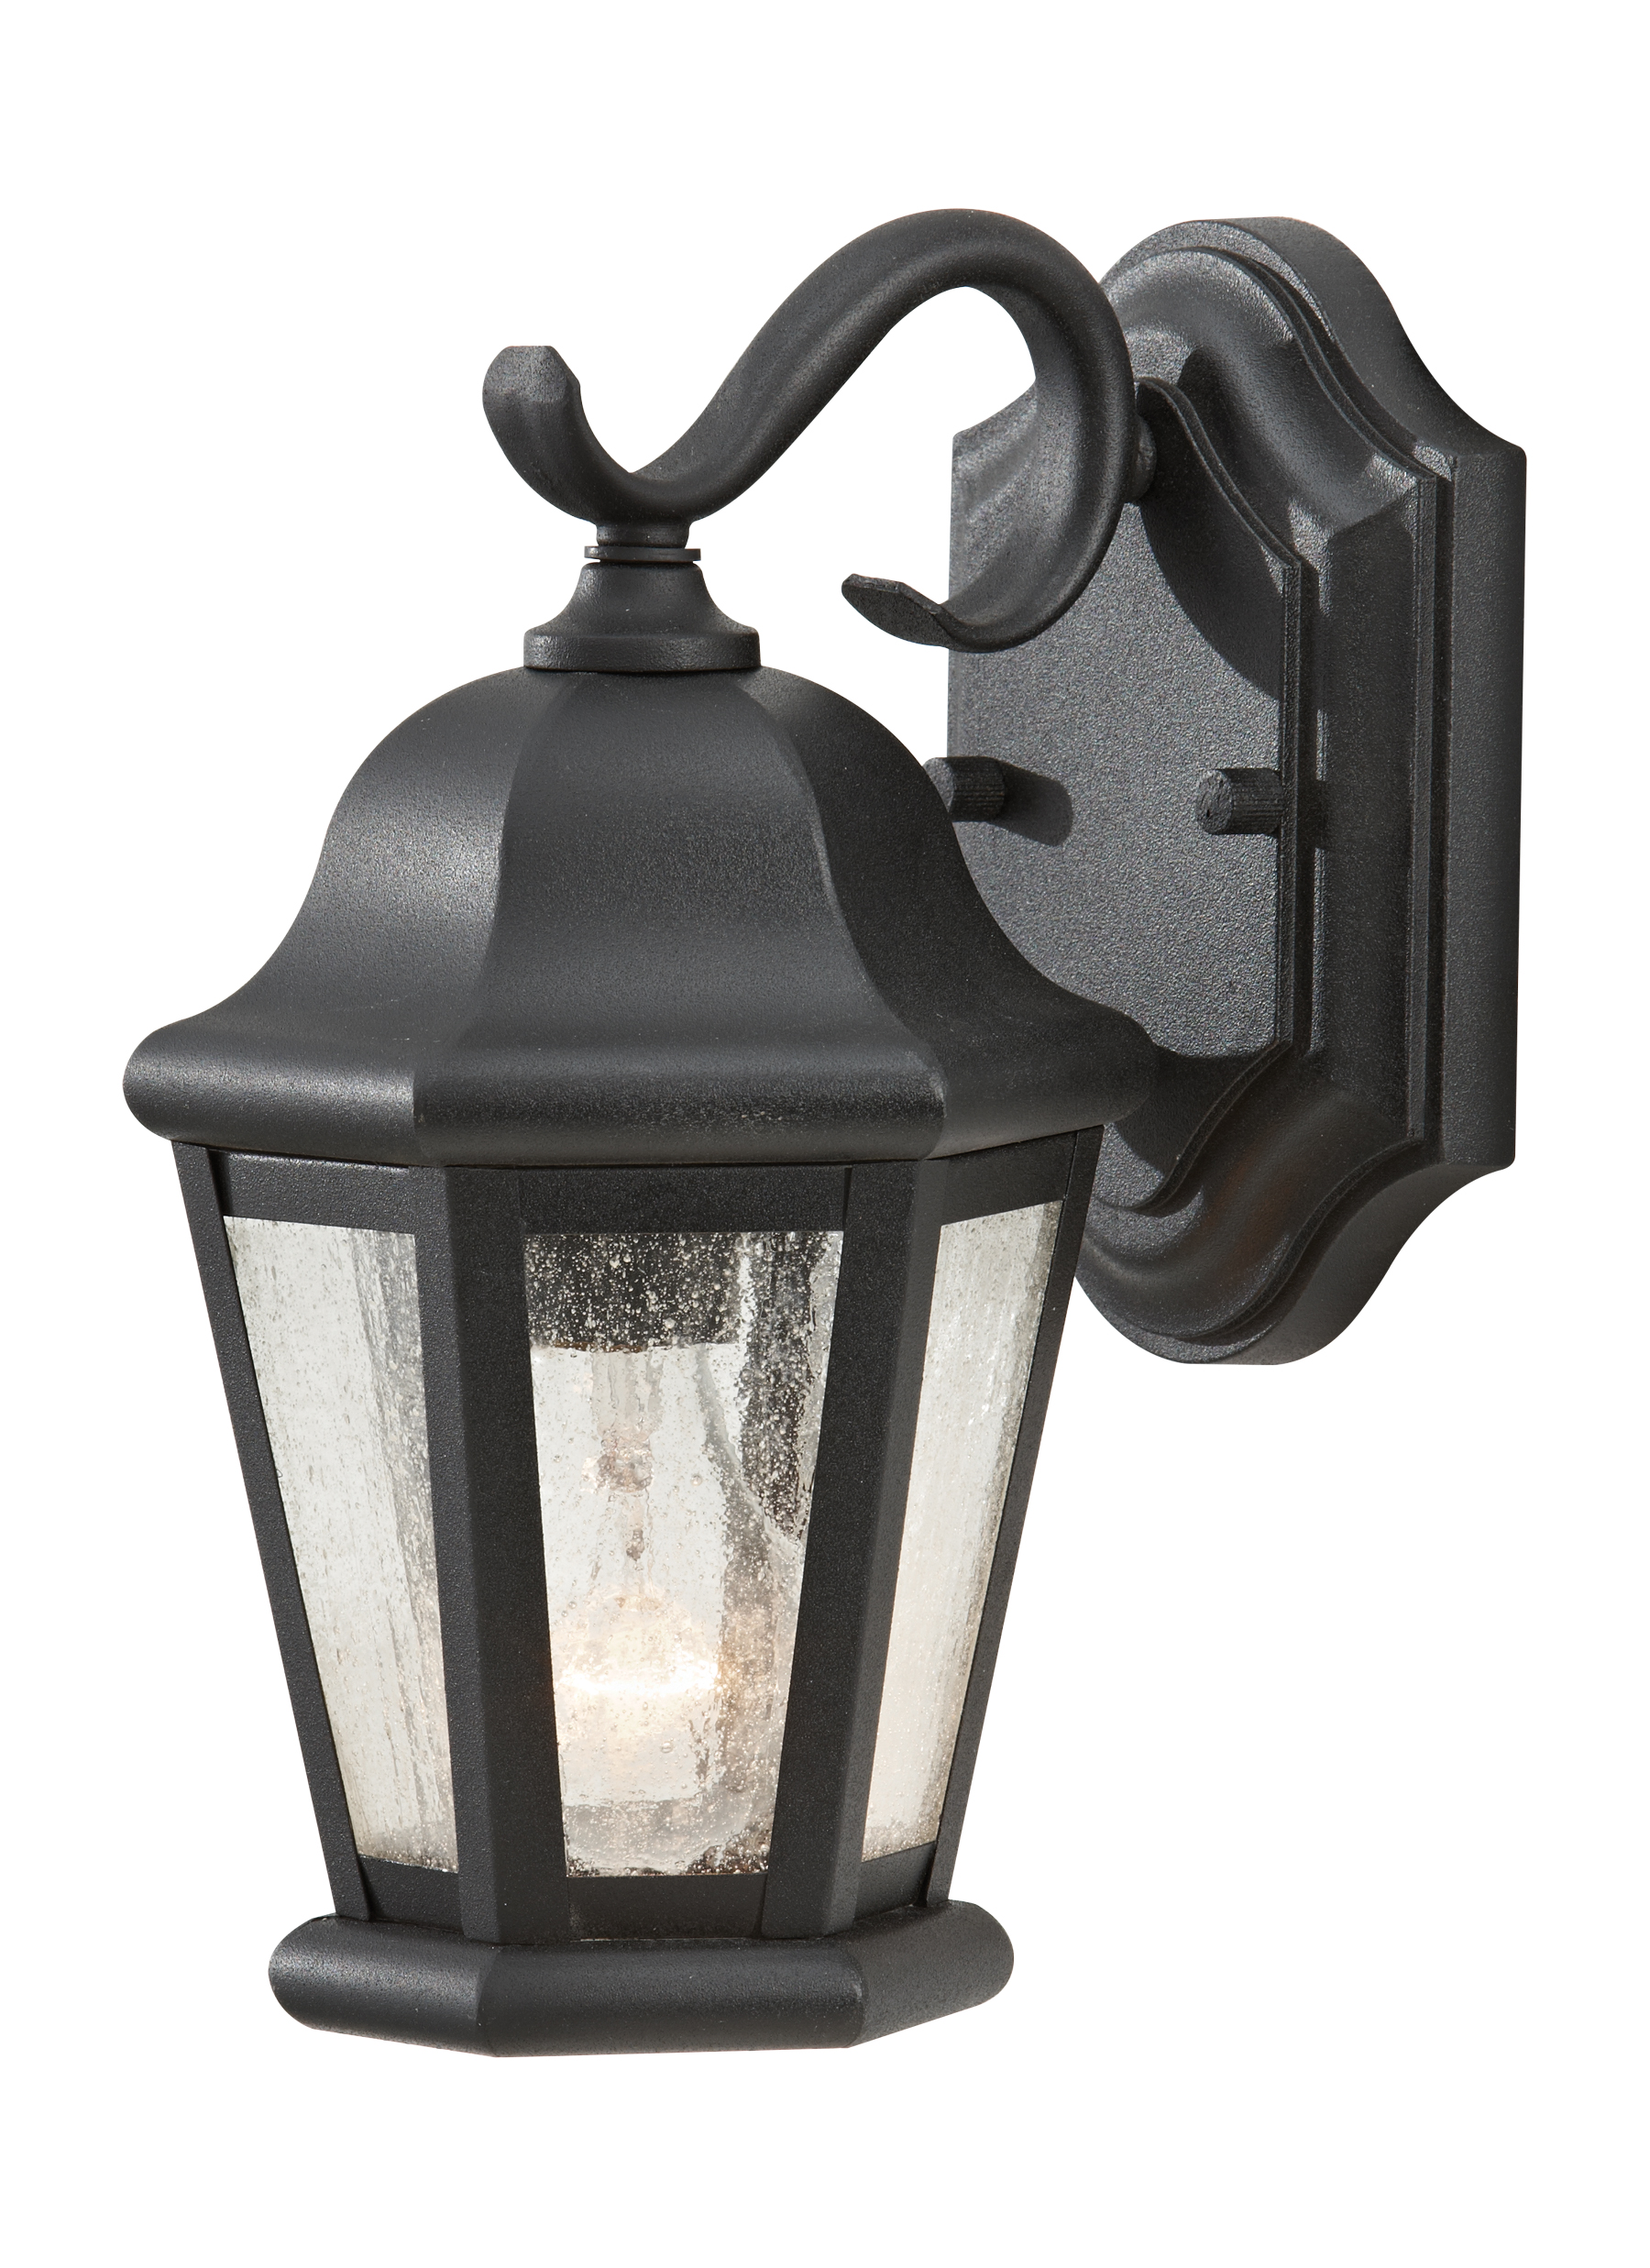 Ol5900bk1 light outdoor lanternblack loading zoom mozeypictures Image collections